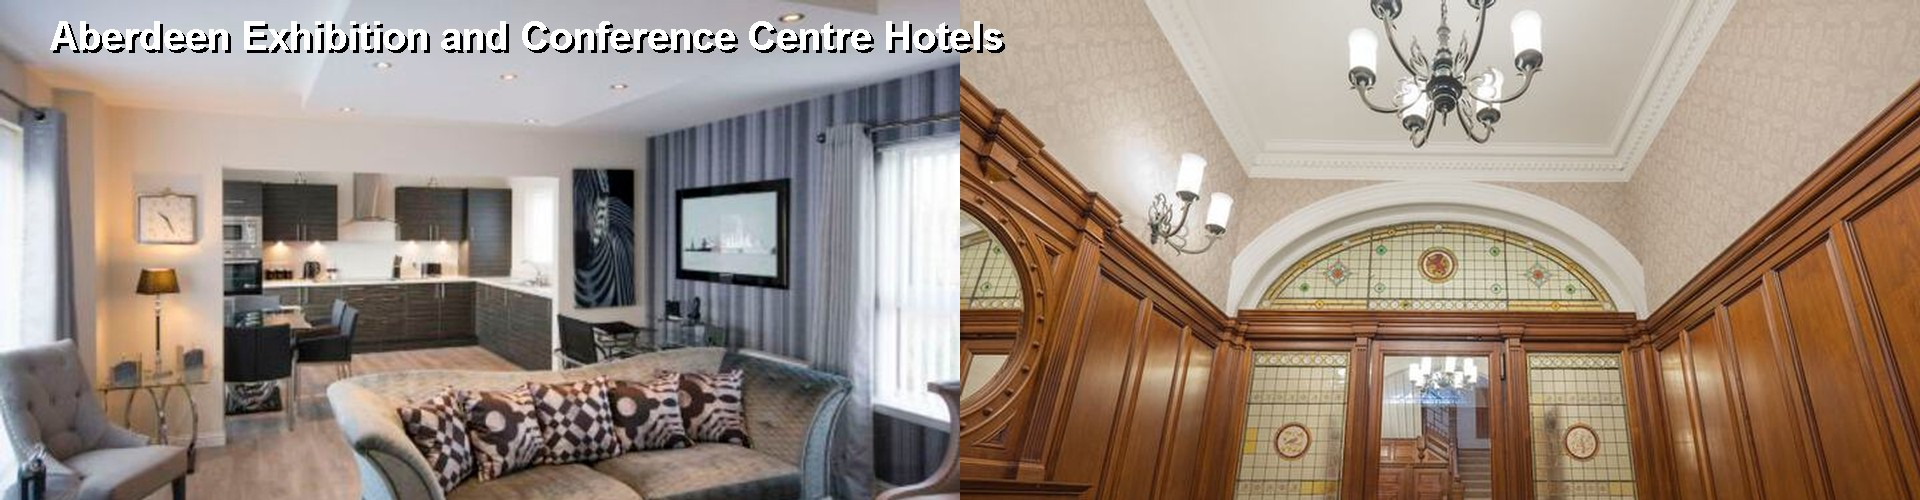 5 Best Hotels near Aberdeen Exhibition and Conference Centre